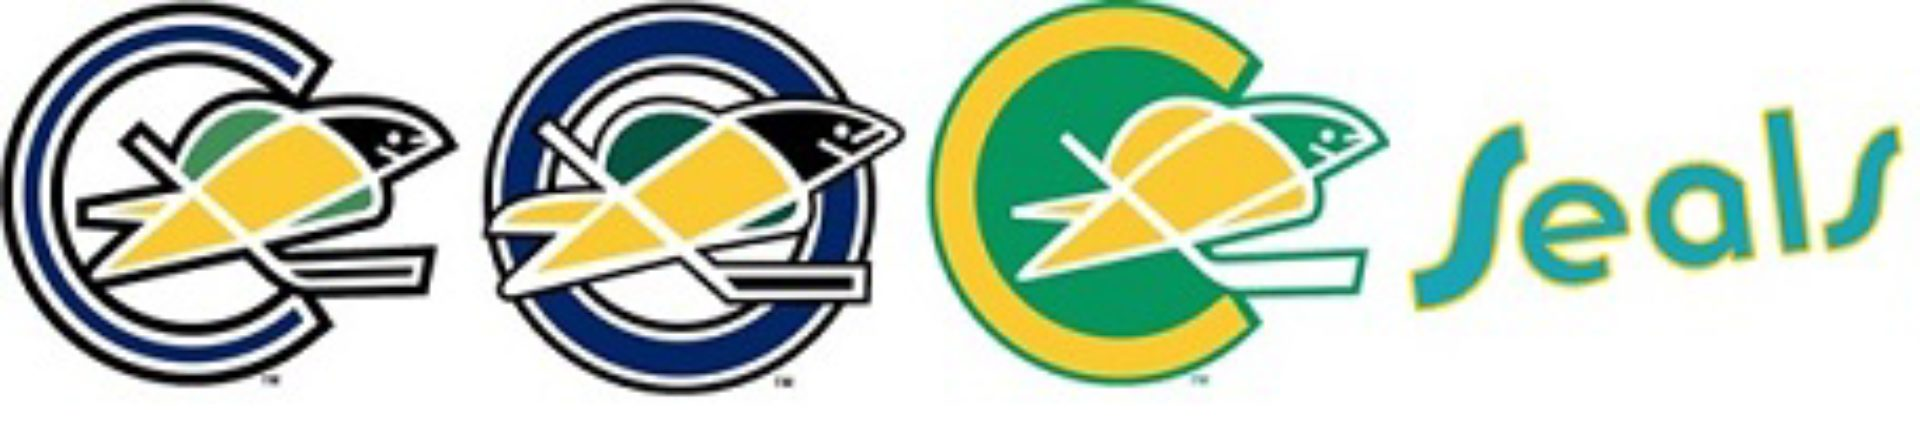 913ea863a38 Links – Golden Seals Hockey